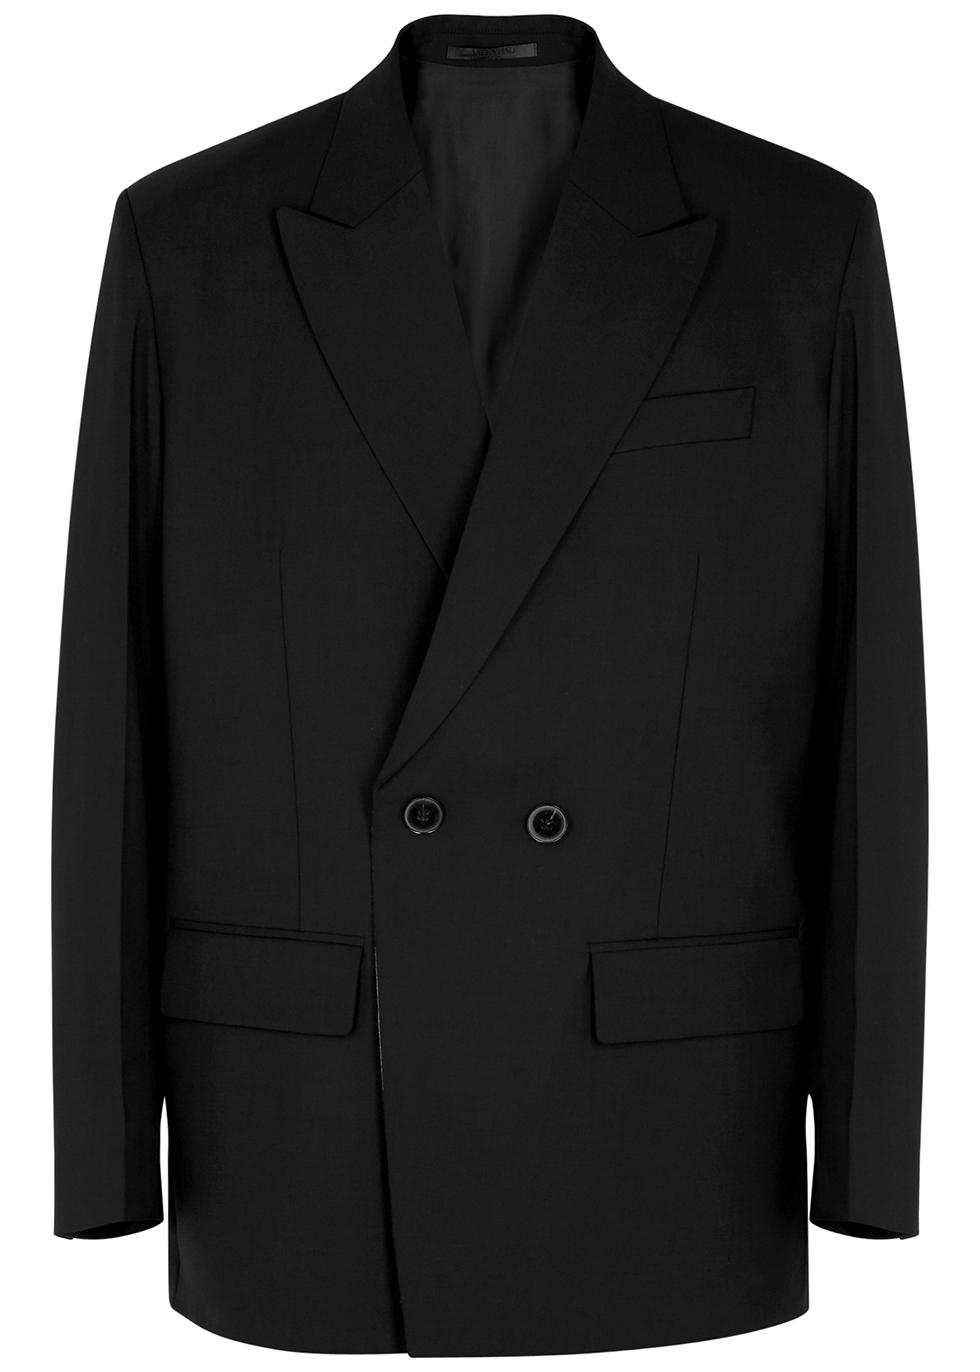 Black double-breasted blazer